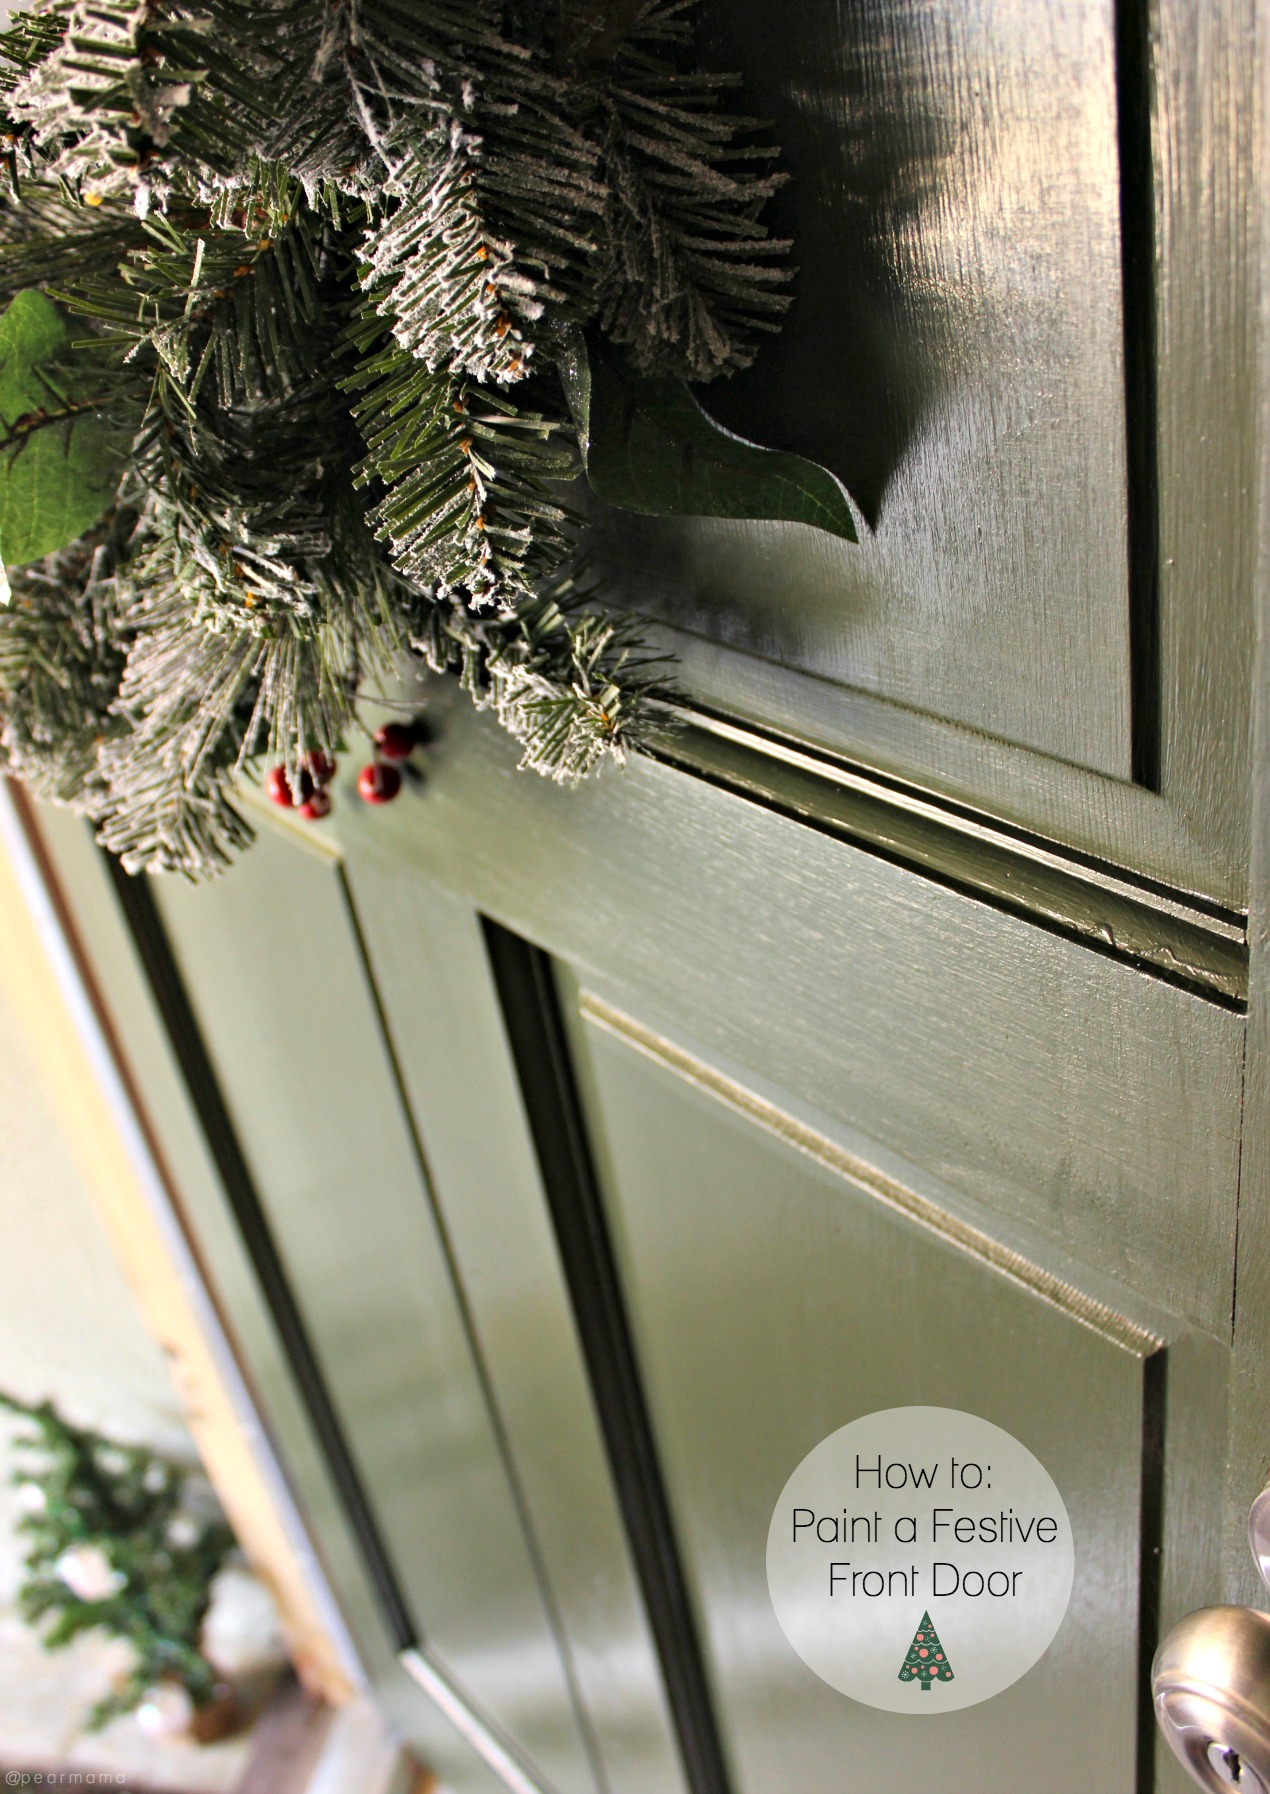 how-to-paint-festive-front-door